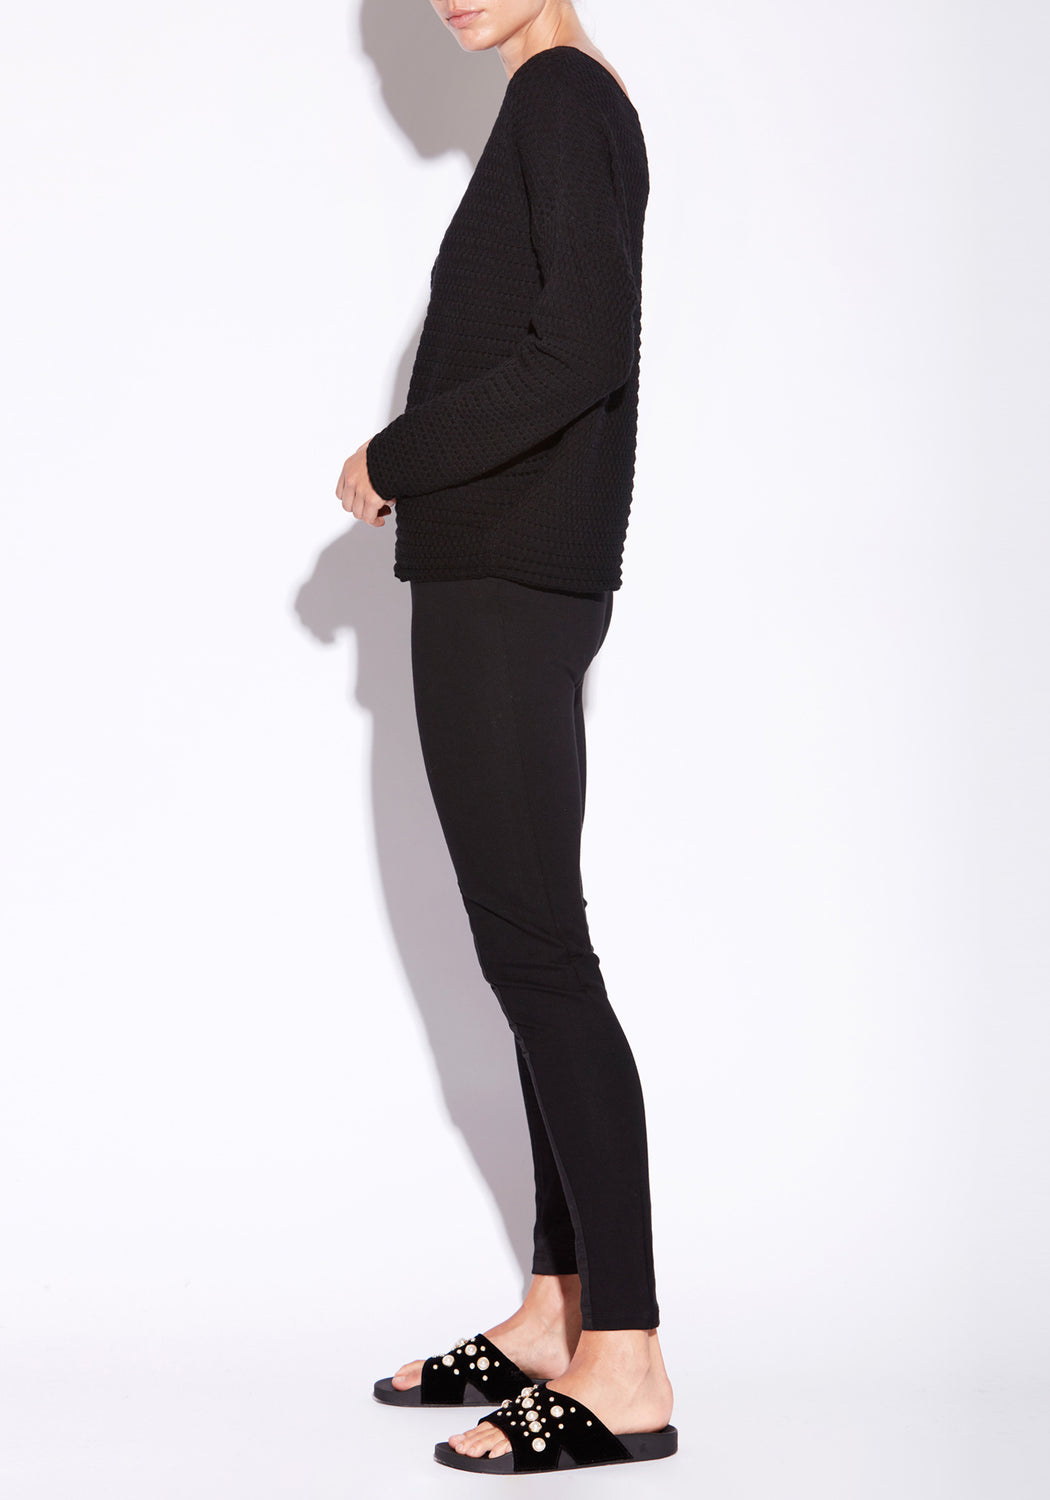 Aviate Legging